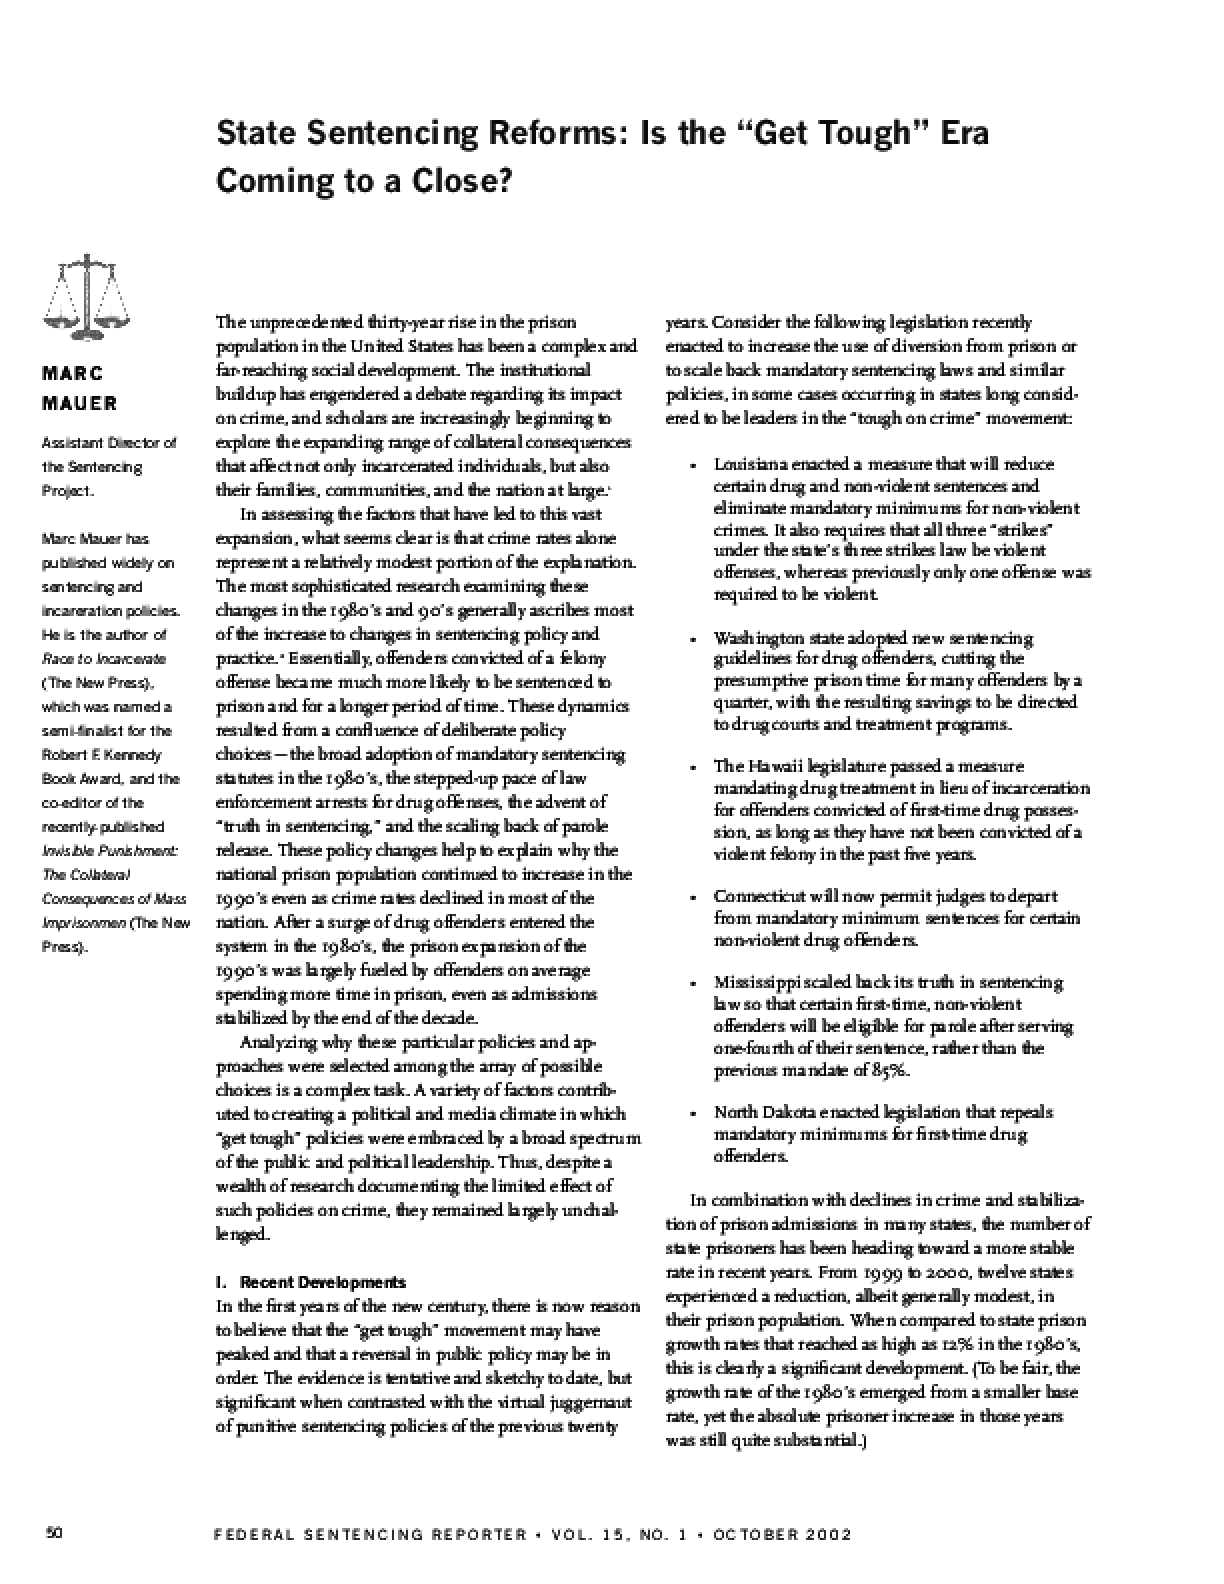 Changing Direction? State Sentencing Reforms 2004-2006